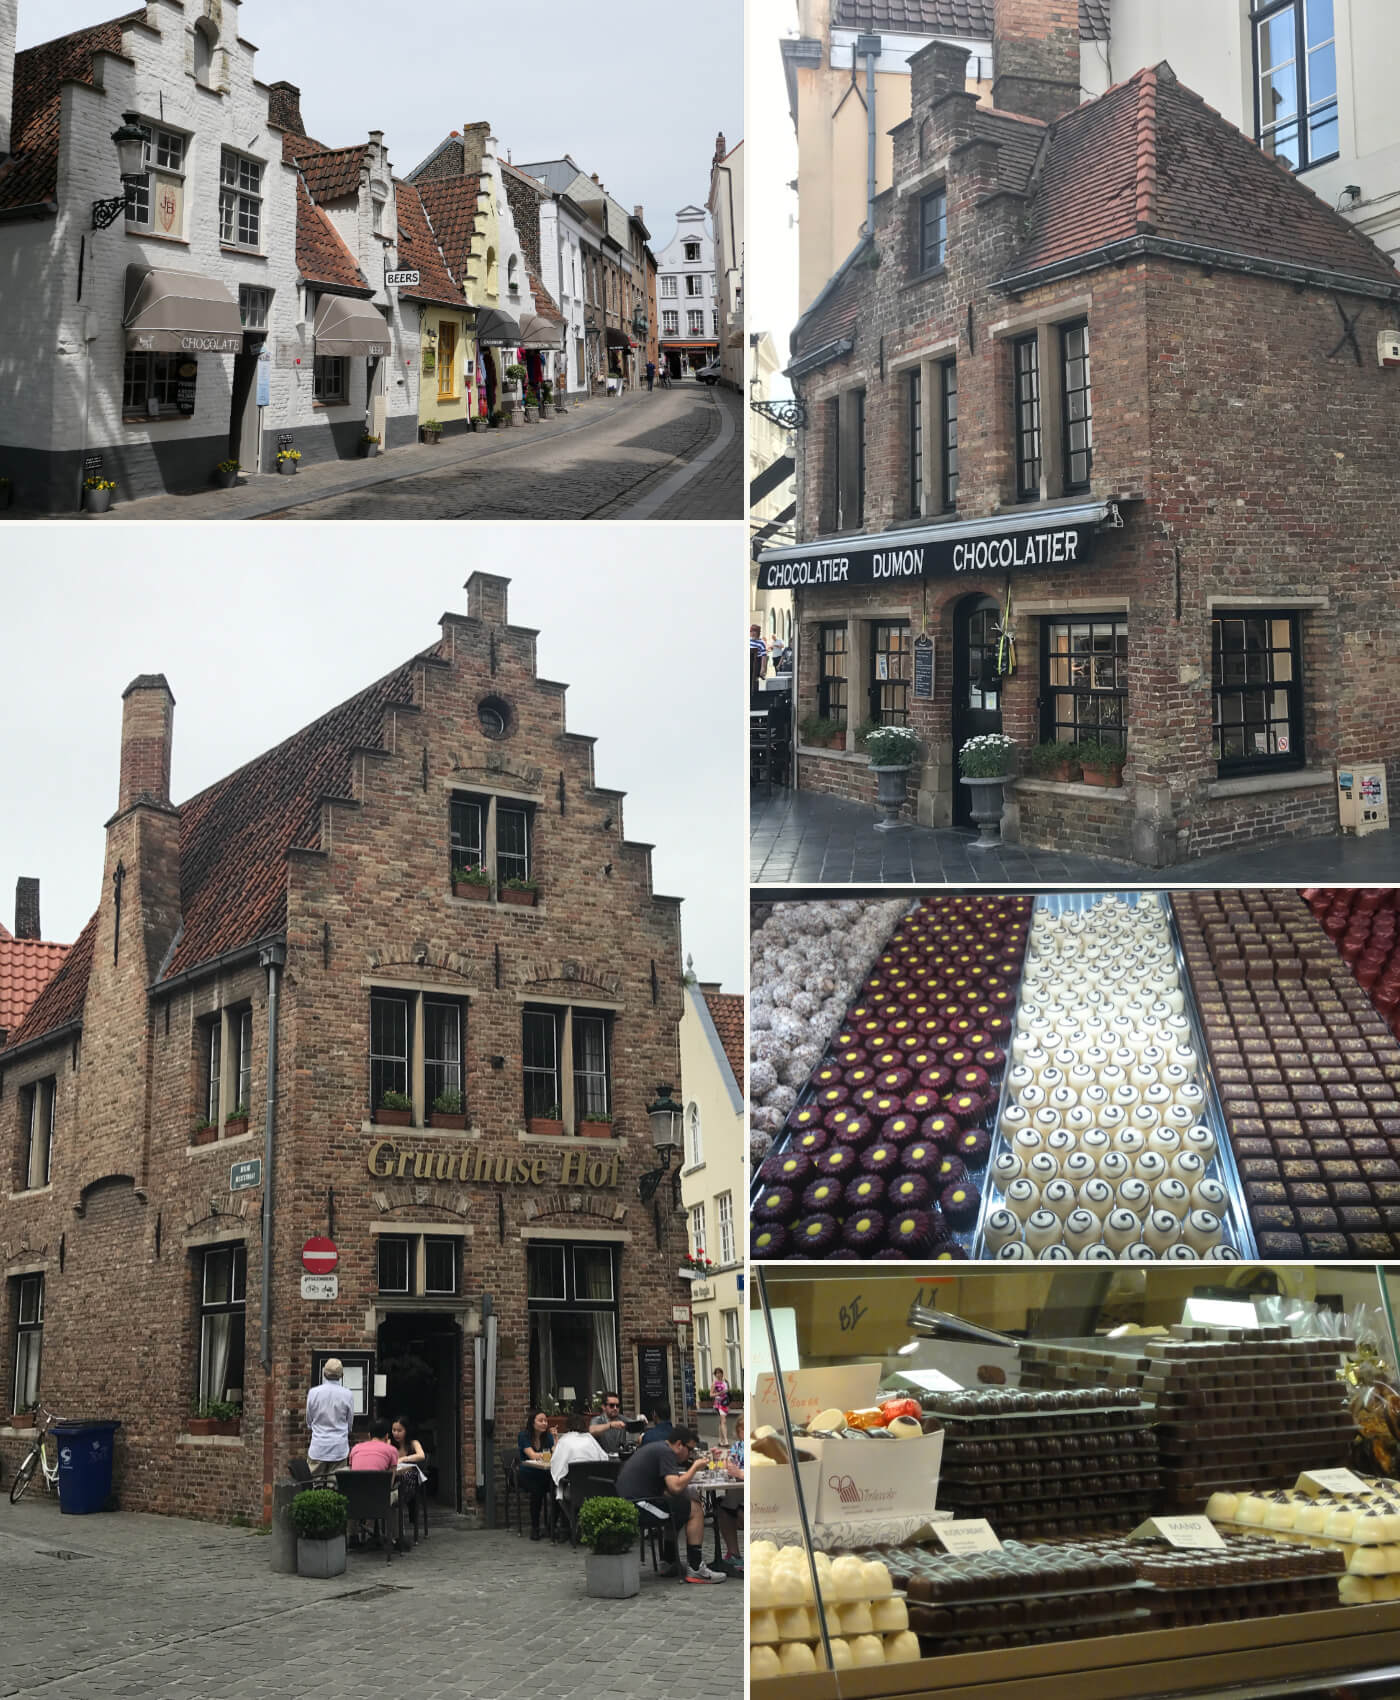 Restaurant and chocolatier Bruges, Belgium